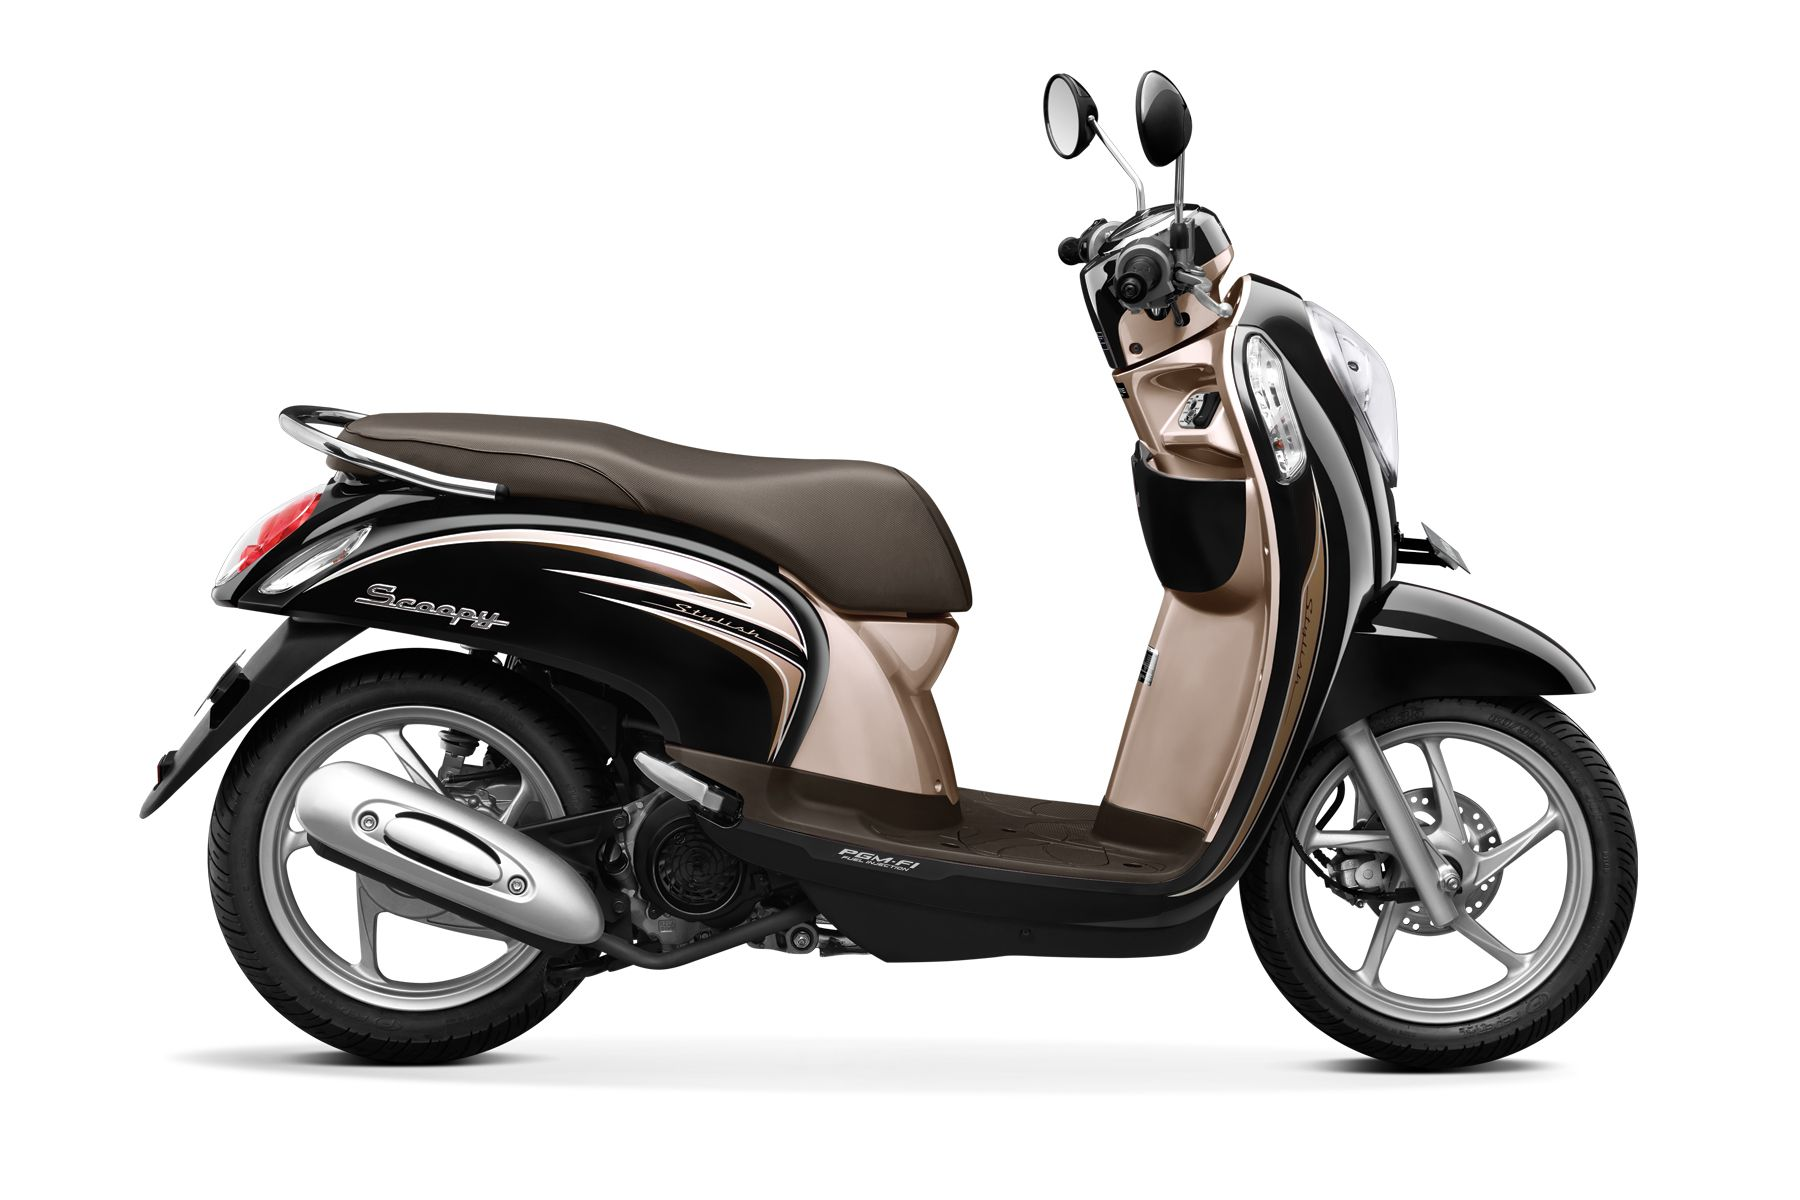 Honda Scoopy Photo And Video Review Comments